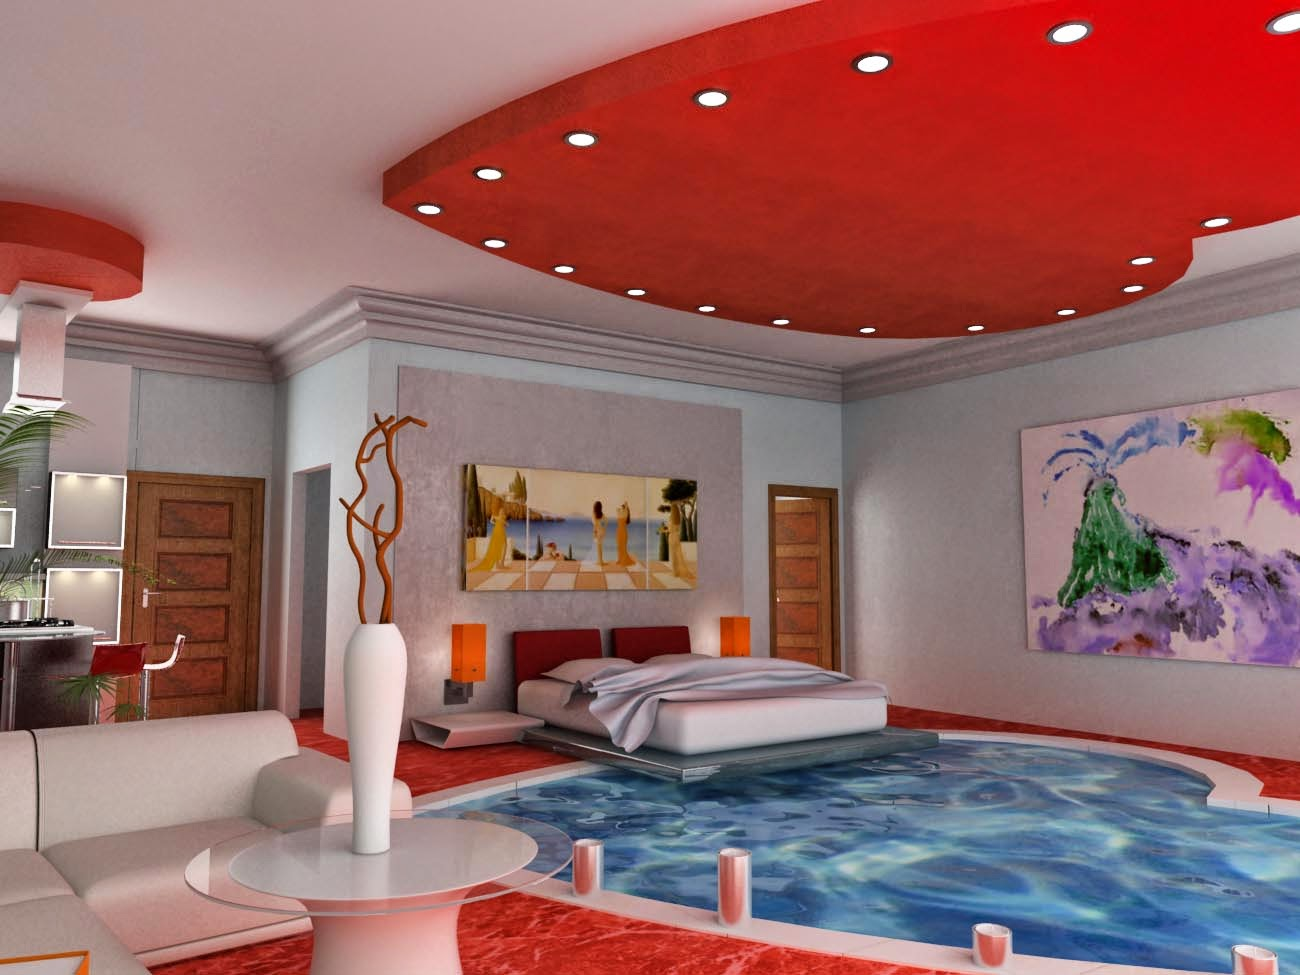 From Pillow To Pool: 25+ Amazing Bedrooms With Pool ... on Amazing Bedroom  id=98617